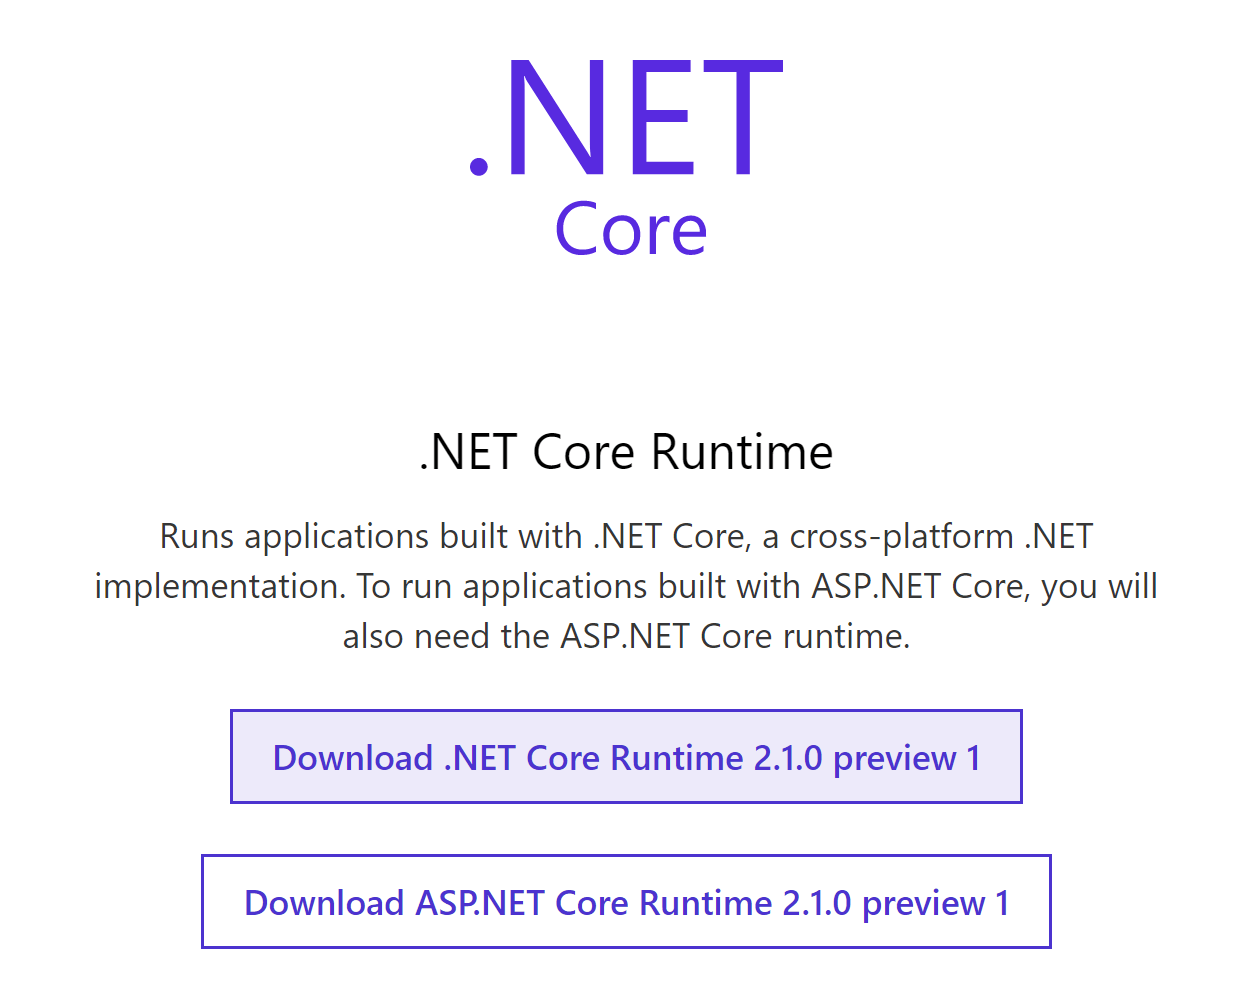 Exploring the Microsoft.AspNetCore.App shared framework in ASP.NET Core 2.1 (preview 1)